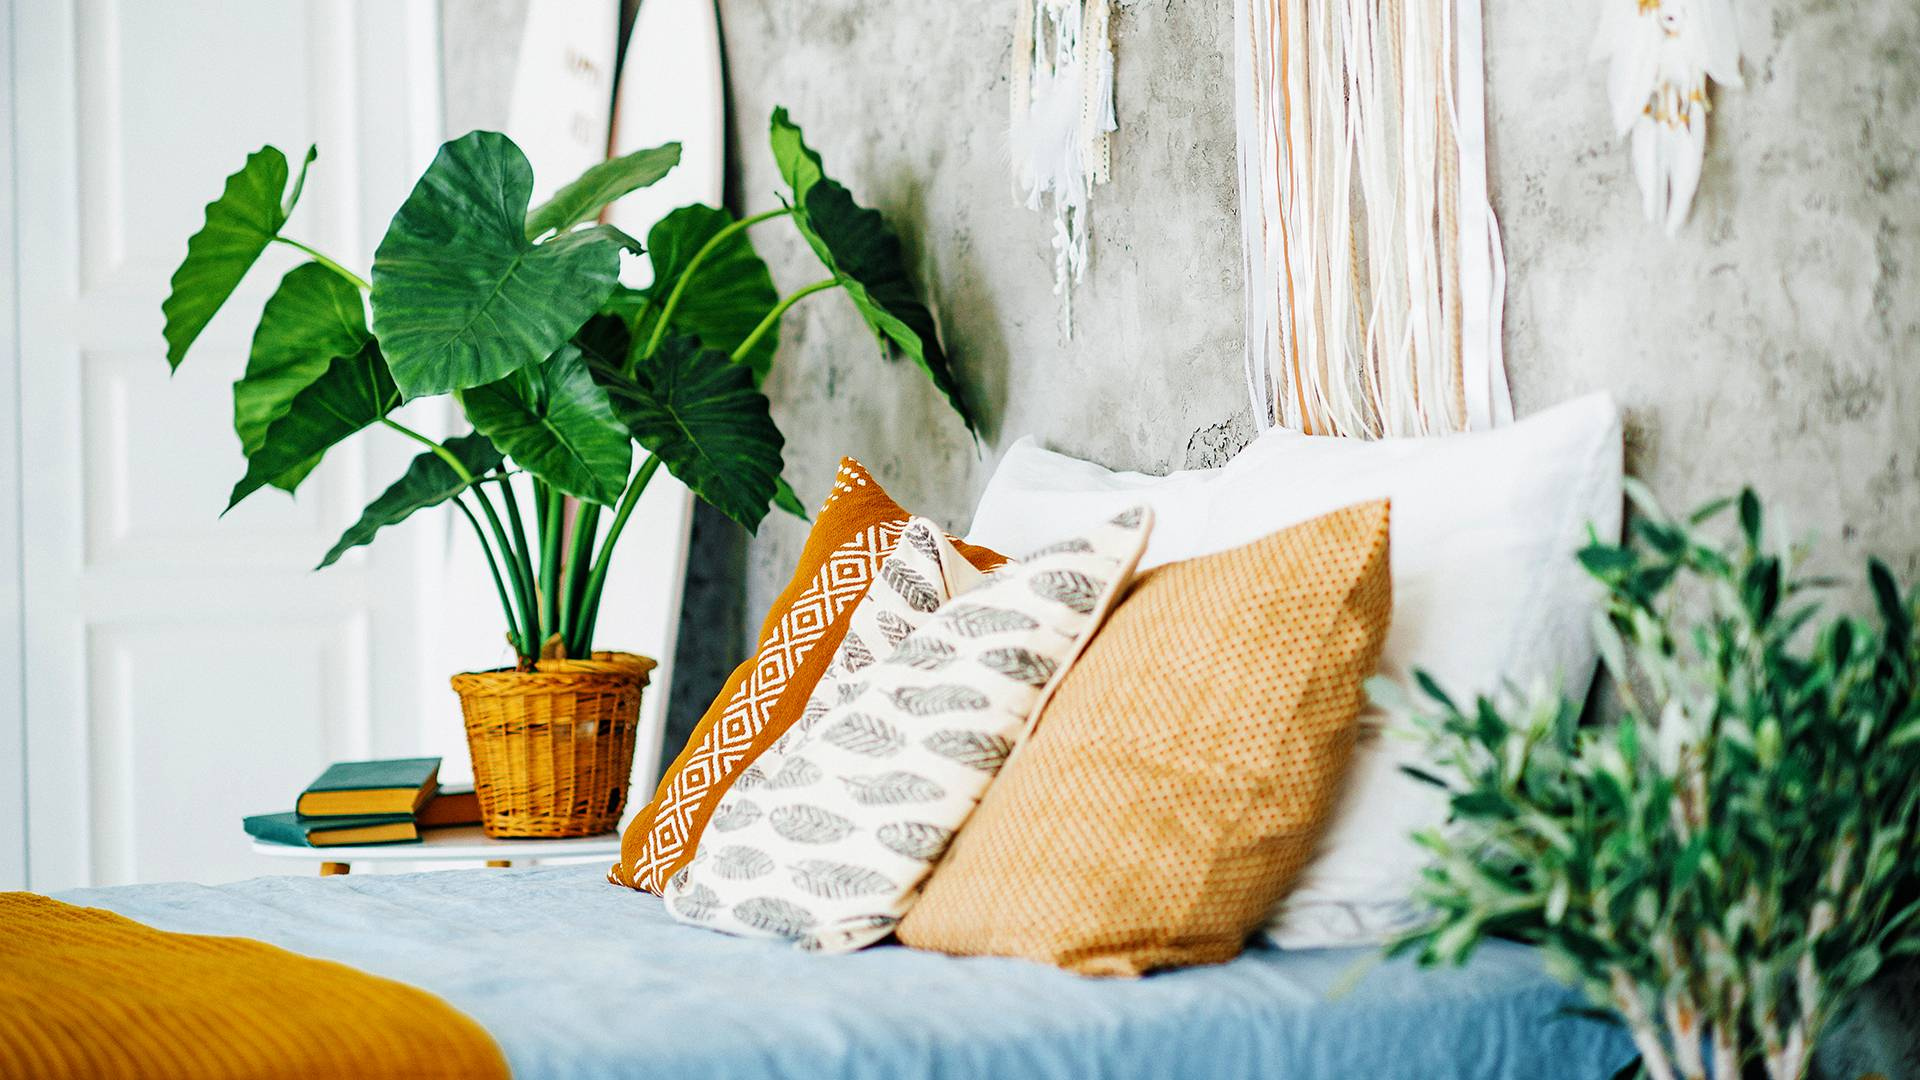 Boho Aesthetic Bedroom Ideas Unique 57 Bohemian Bedroom Decor Ideas Sure to Transform Your Space